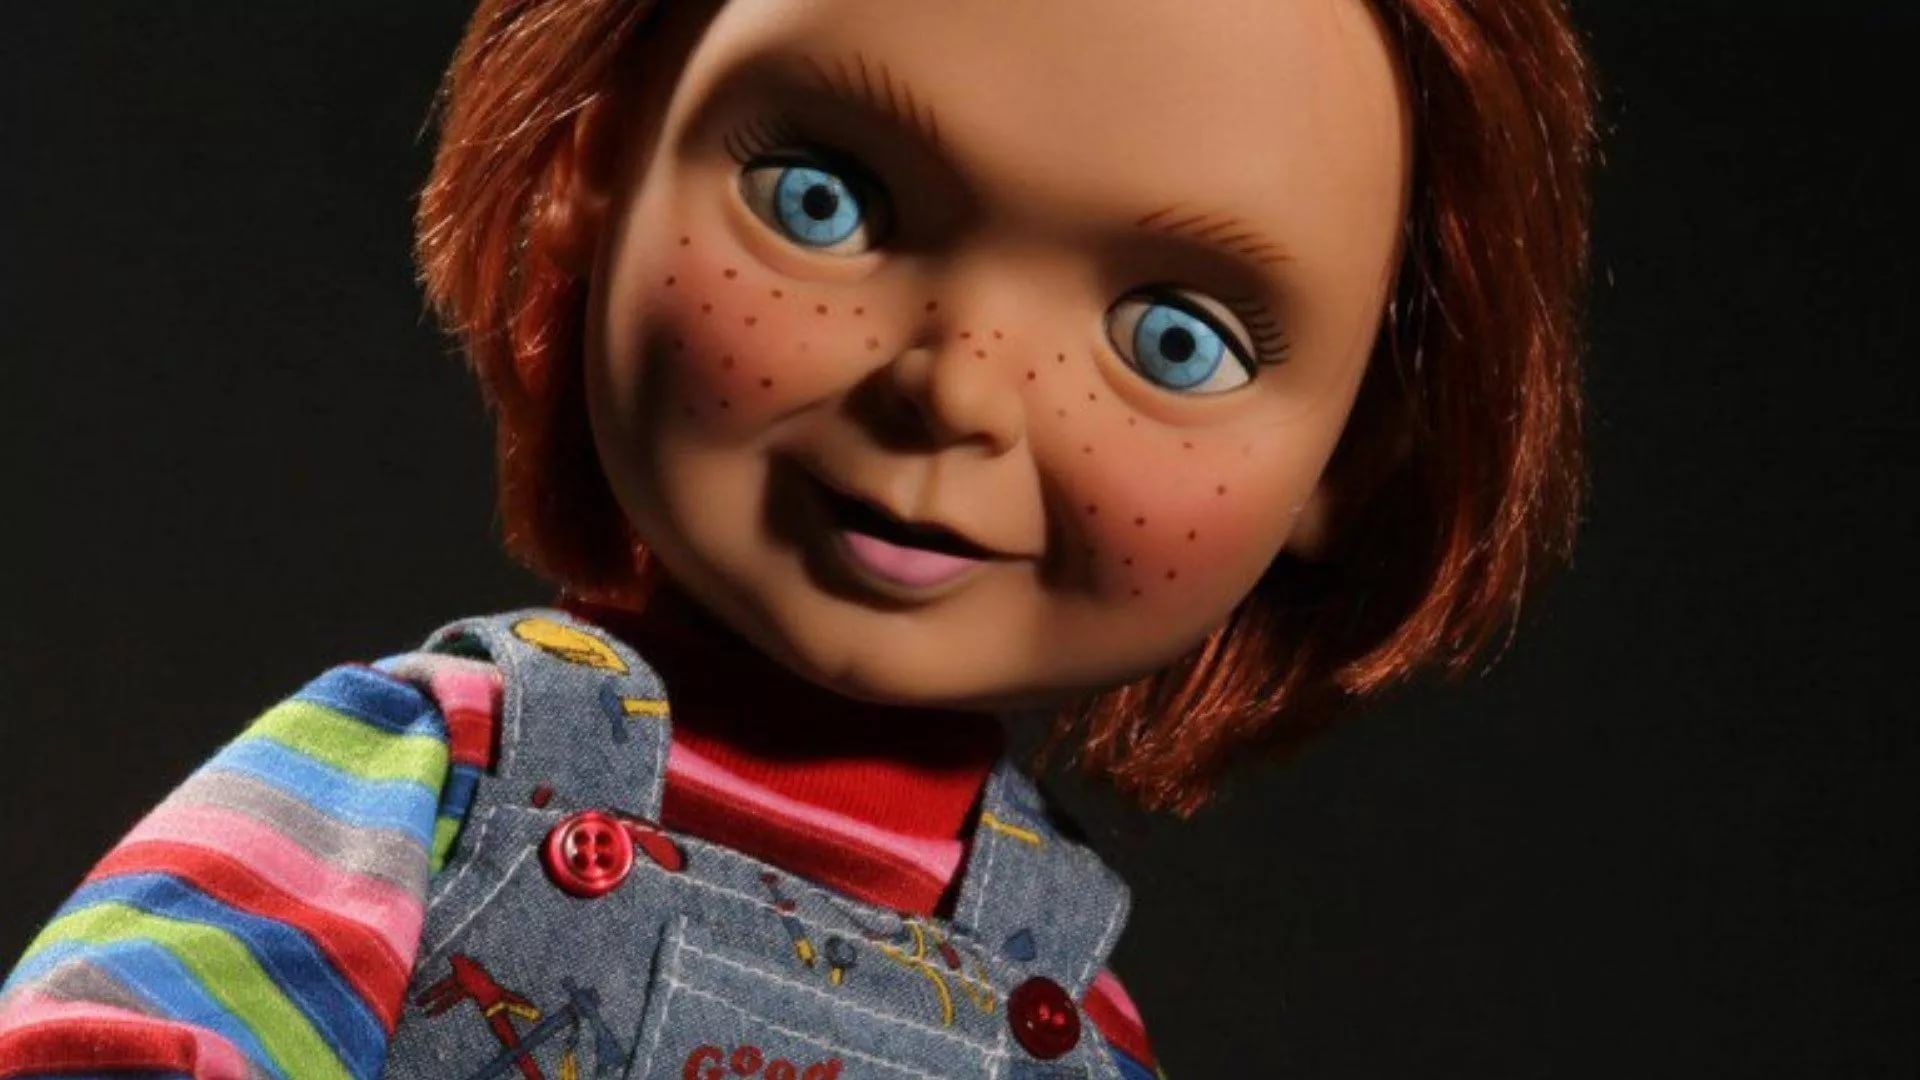 Chucky Doll Free Wallpaper and Background